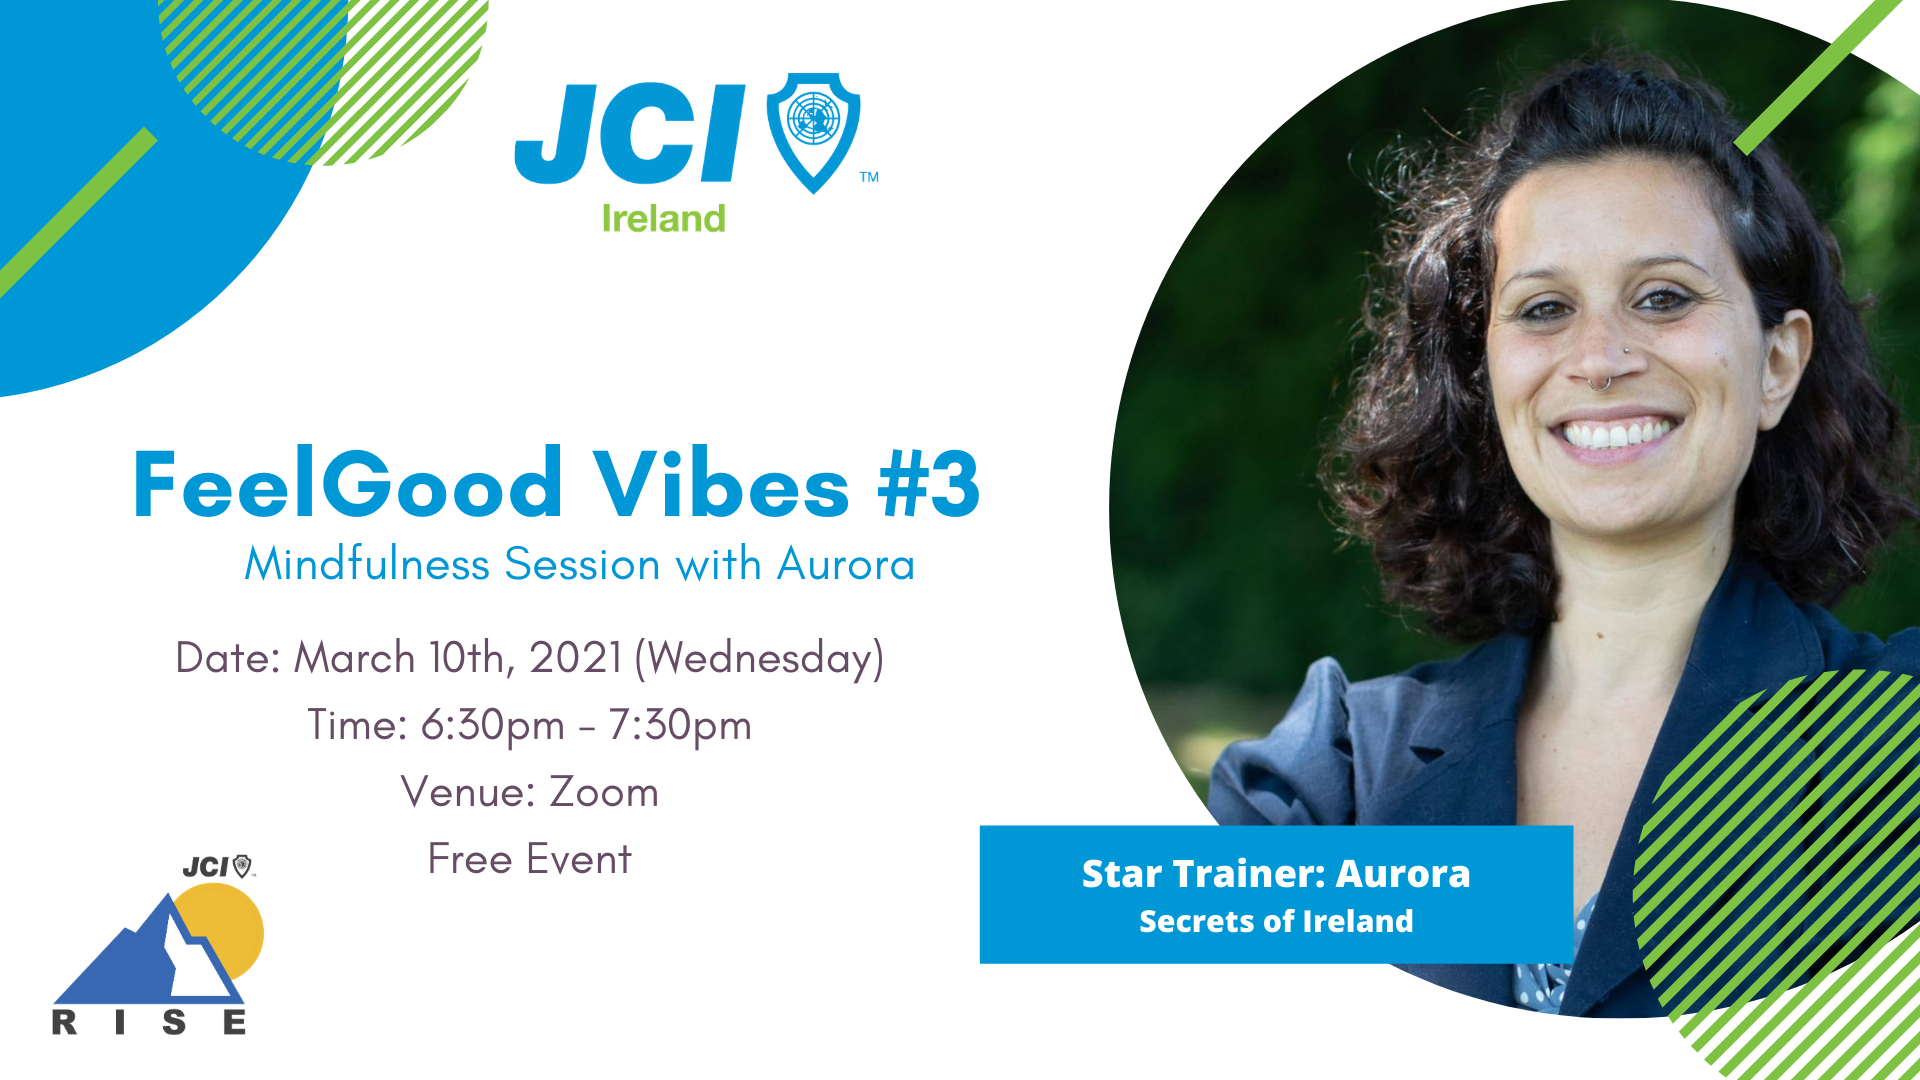 FeelGood Vibes #3 Mindfulness Session with Aurora